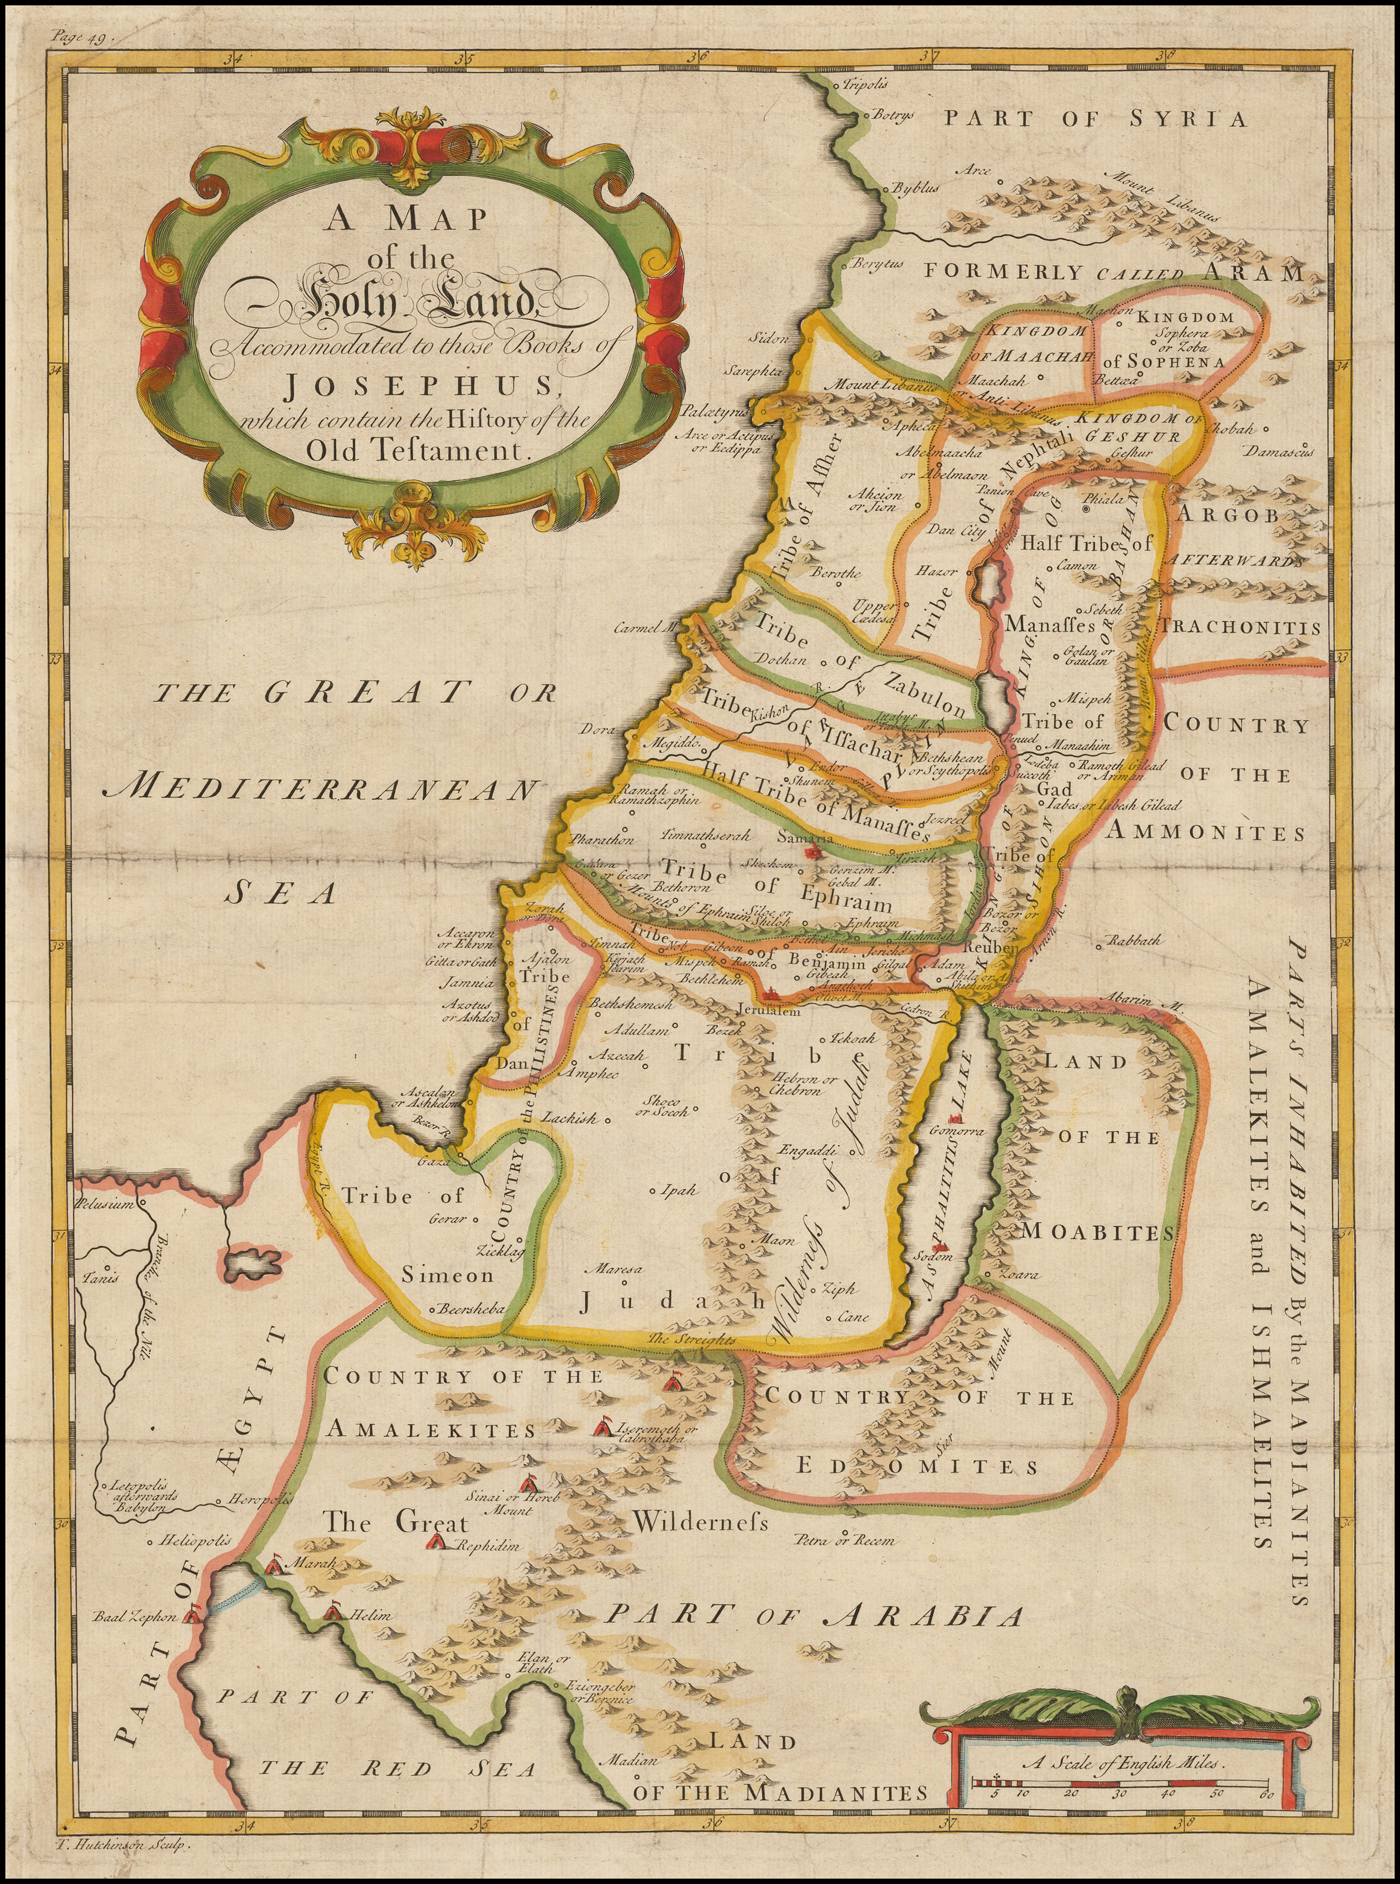 A Map Of The Holy Land Accommodated To Those Books Of